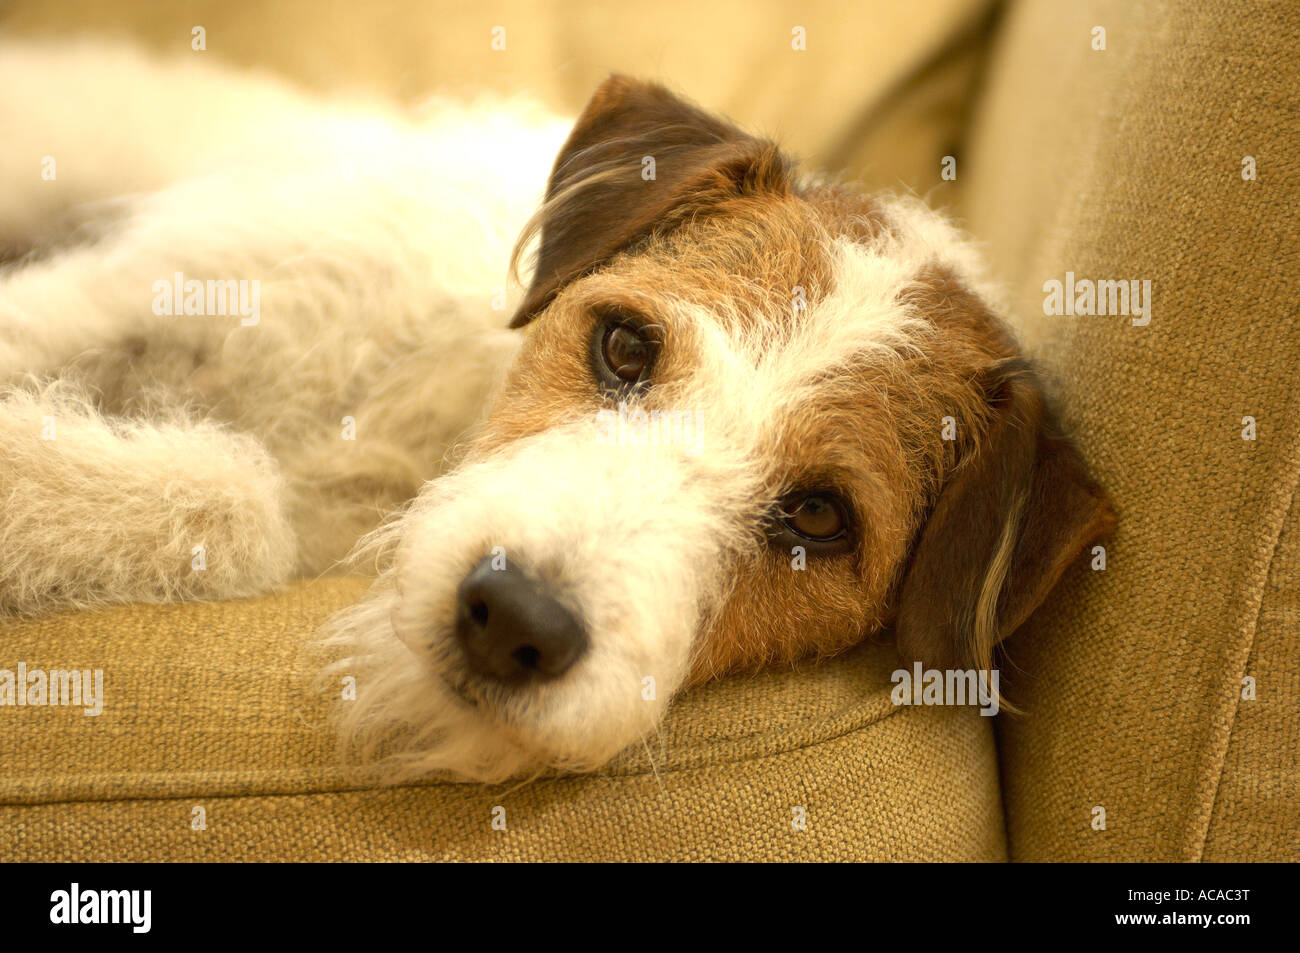 dog on sofa - Stock Image